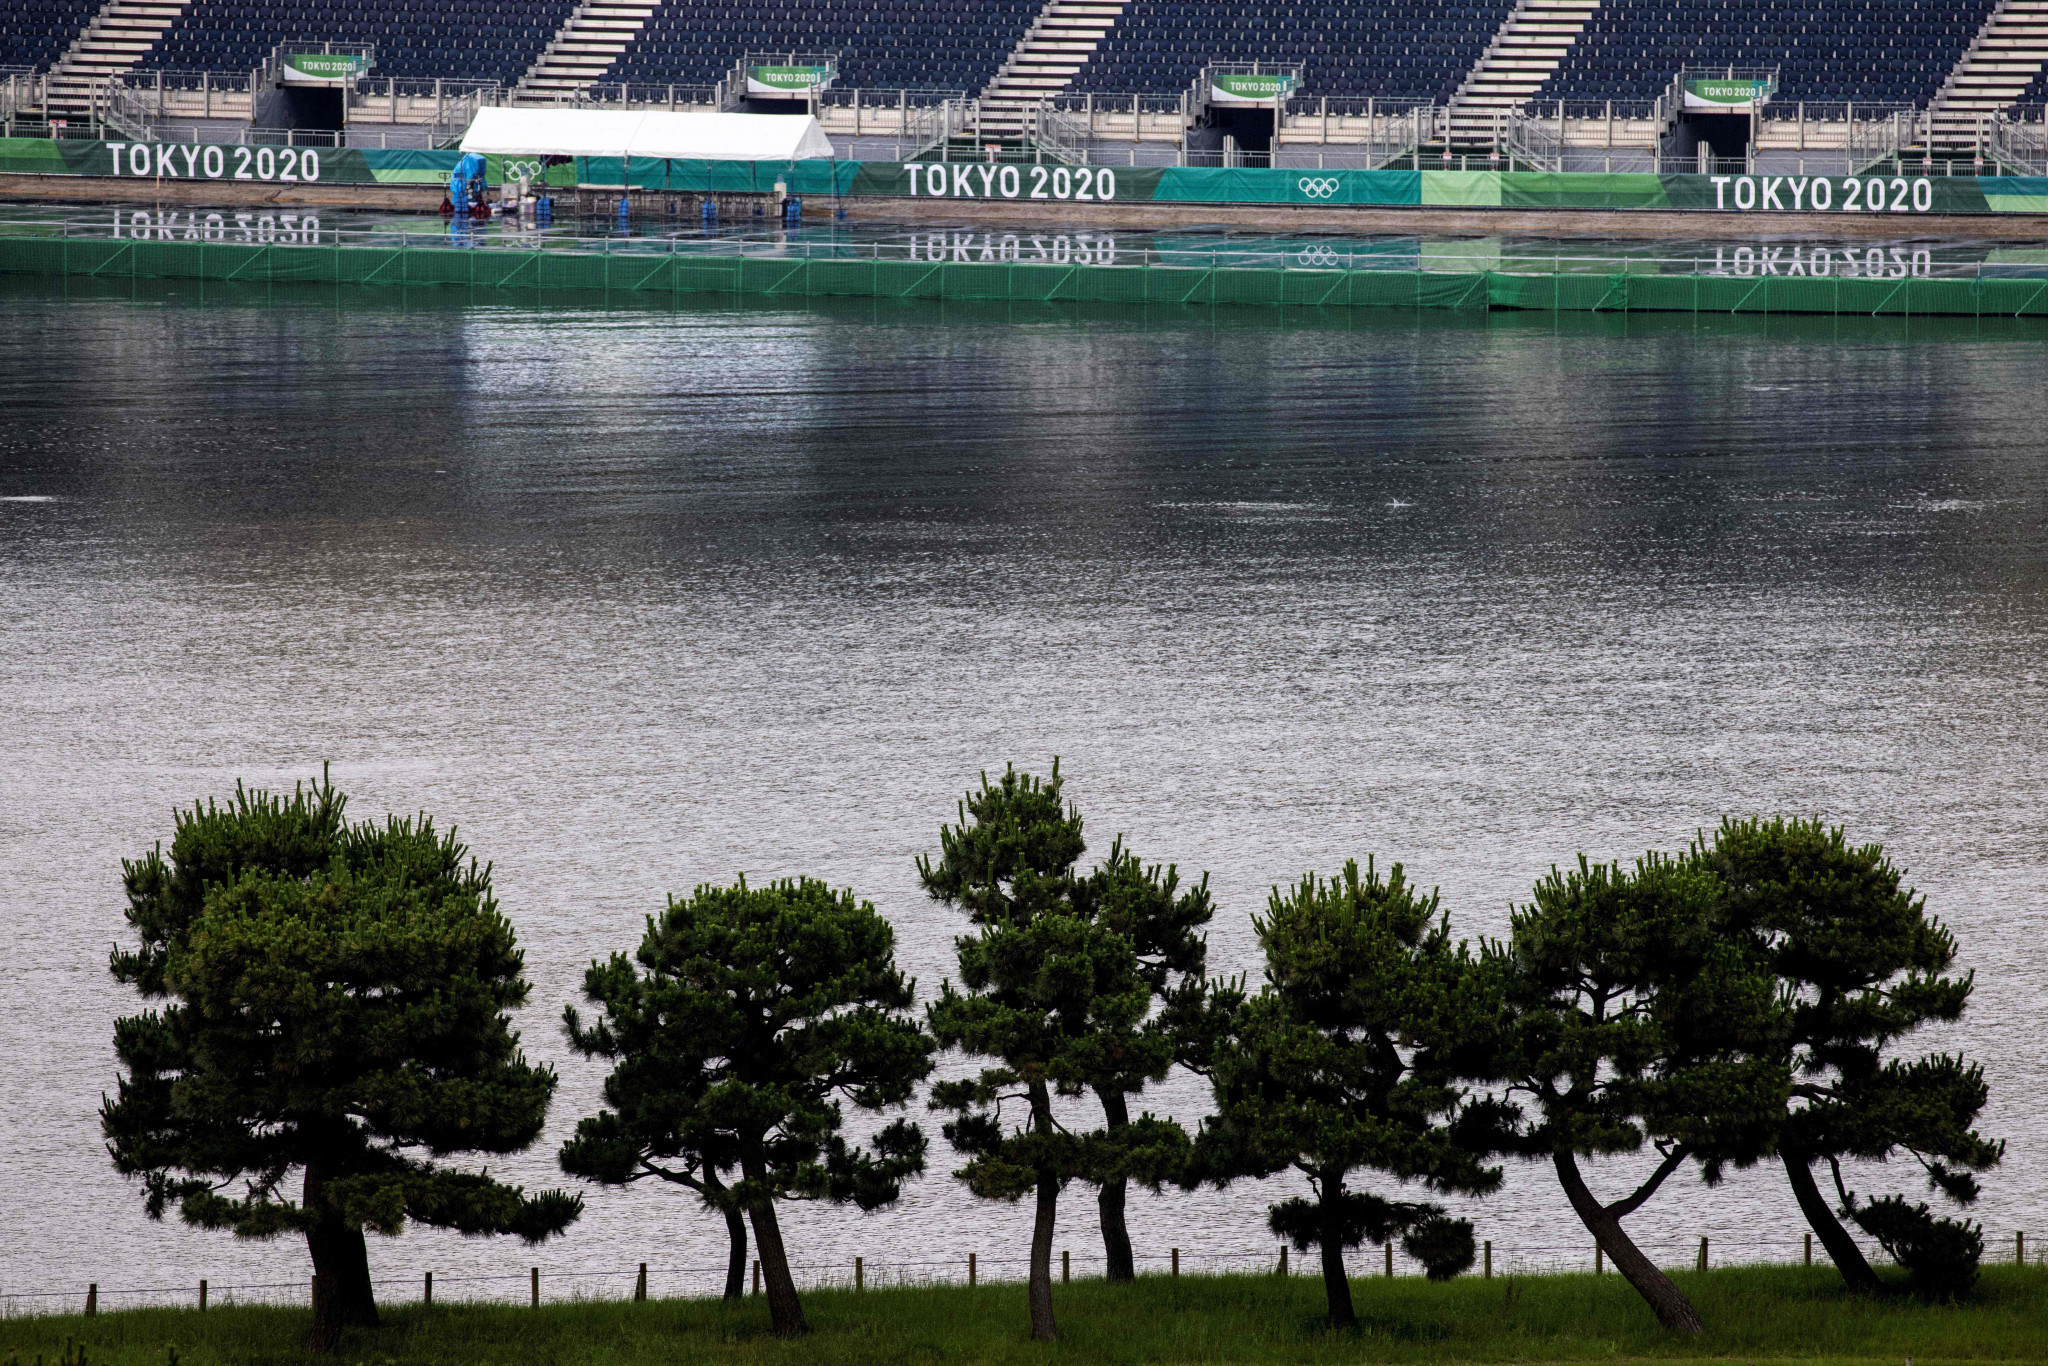 Odaiba Marine Park is the venue for marathon swimming at Tokyo 2020 ©Getty Images